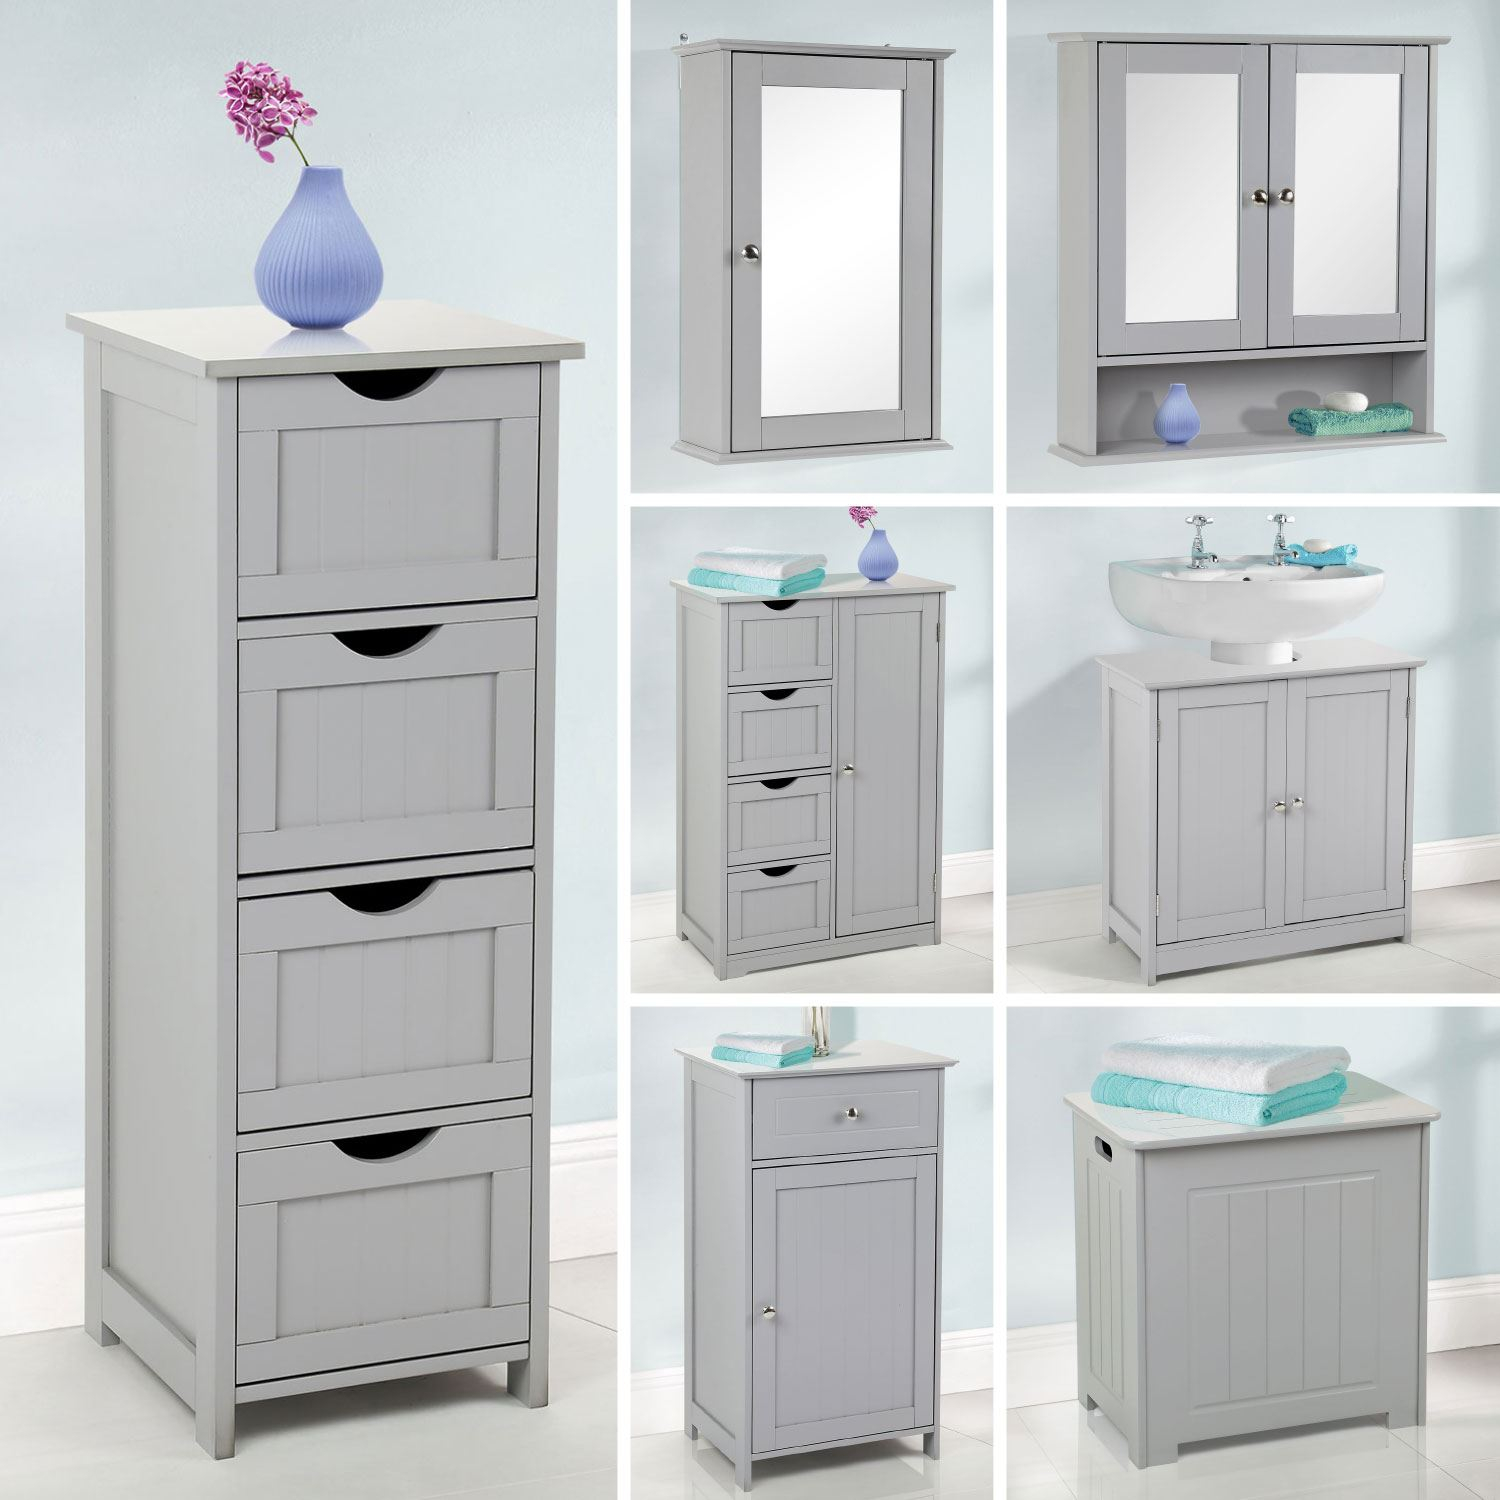 Details About Grey Wooden Bathroom Furniture Range Storage Cabinet Cupboard Under Sink Mirror in measurements 1500 X 1500